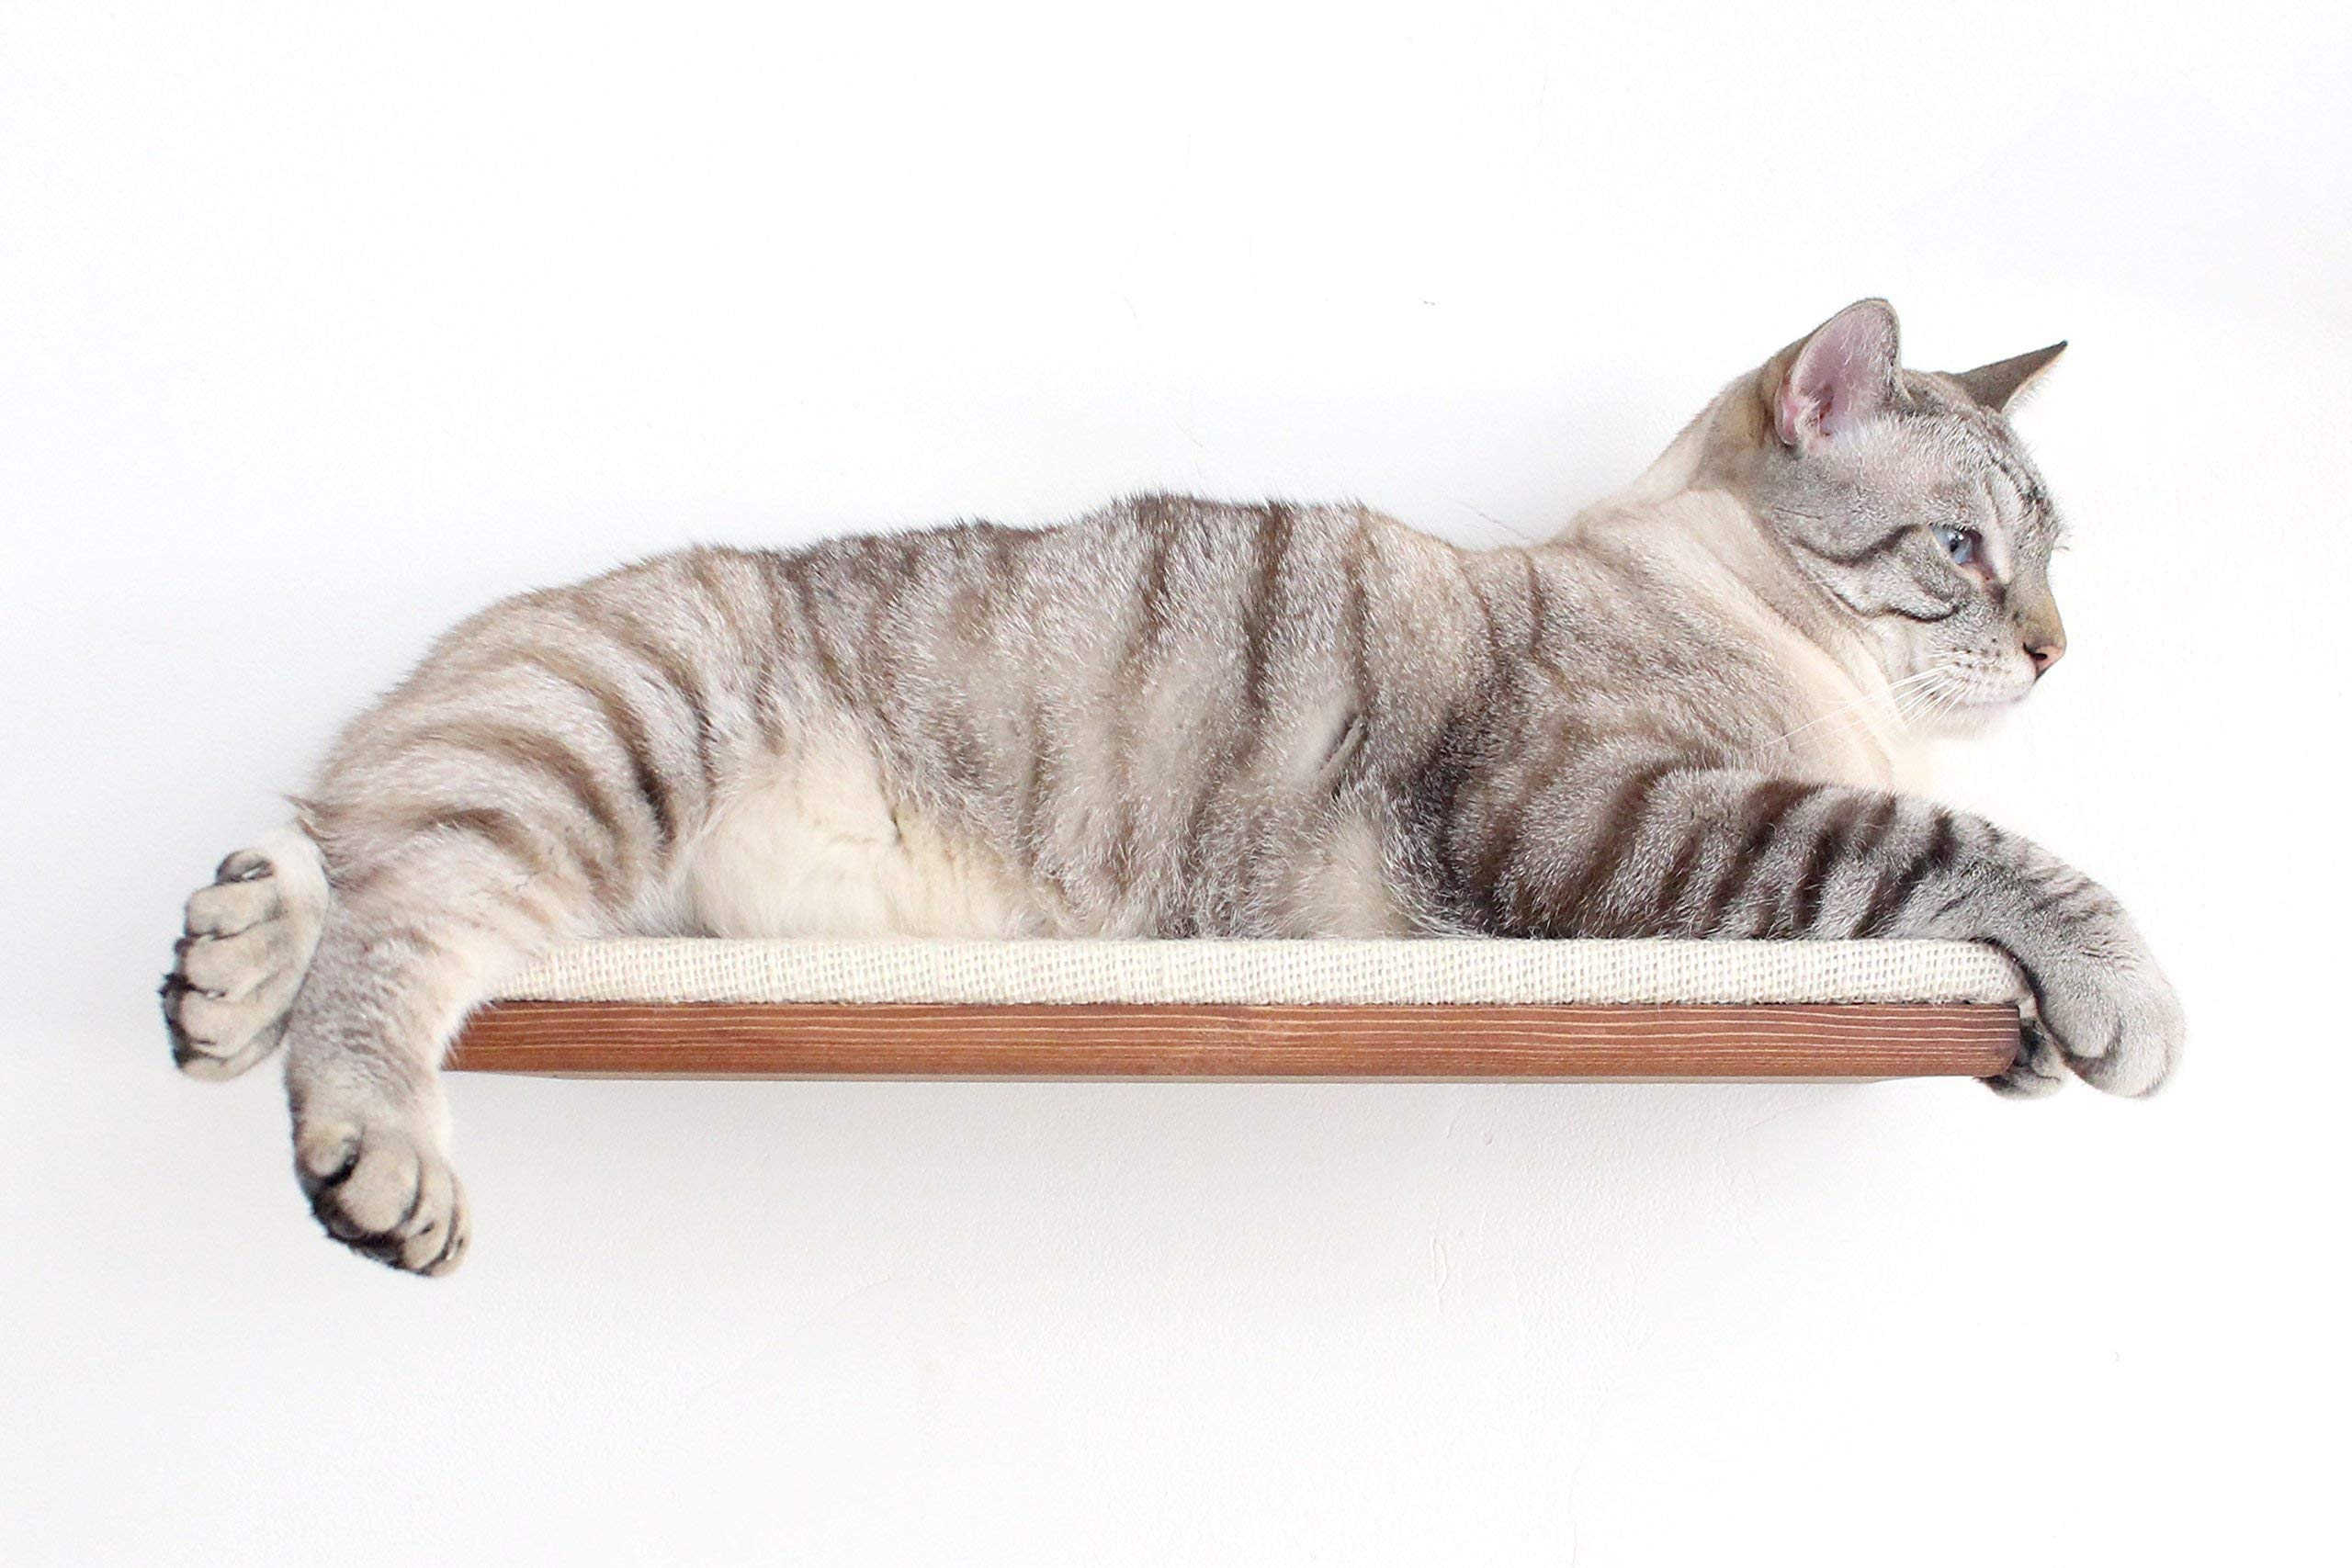 CatastrophiCreations 18'' Shelf with Burlap Fabric - Handcrafted Wall-mounted Cat Furniture